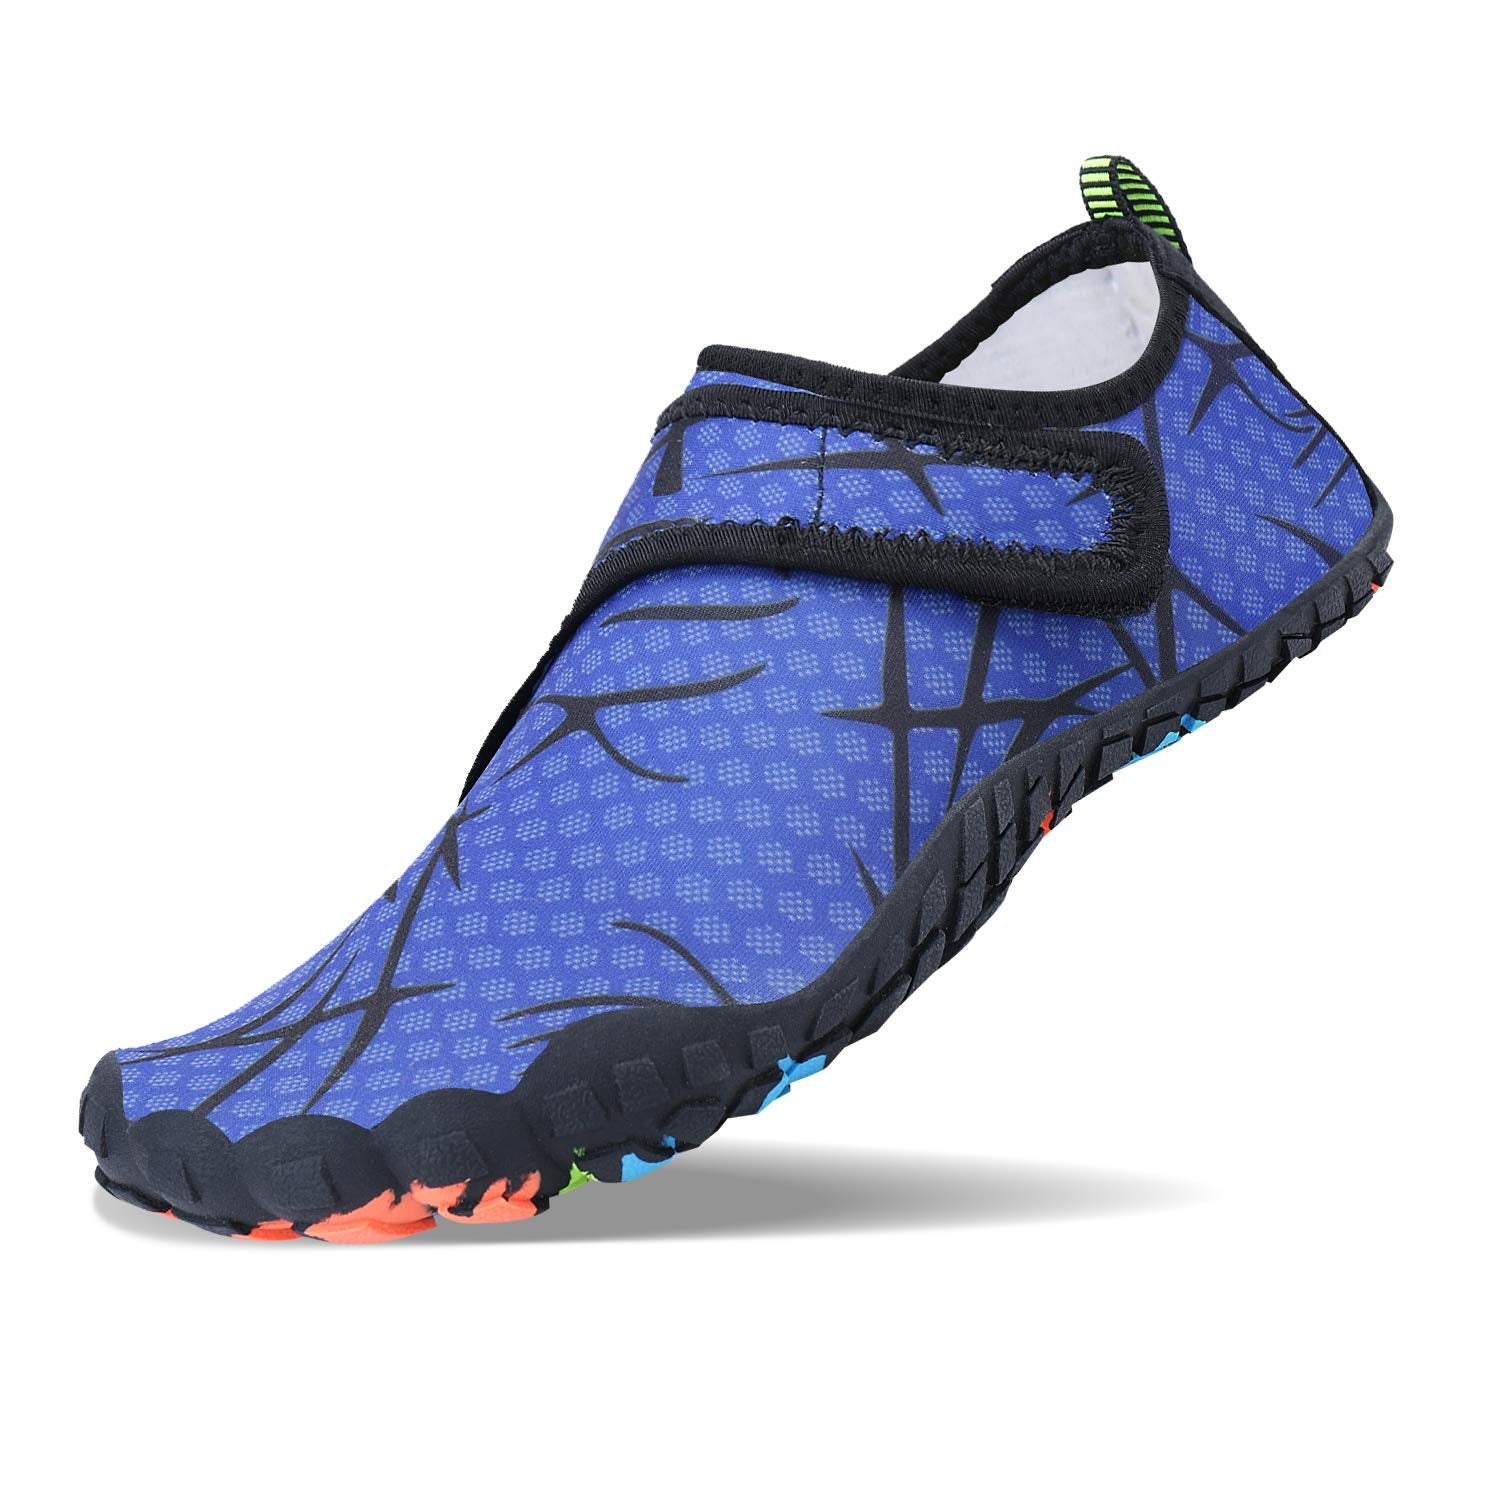 2d29f8da688af6 ... Load image into Gallery viewer, WXDZ Men Women Water Shoes Quick Dry  Barefoot Aqua Socks ...